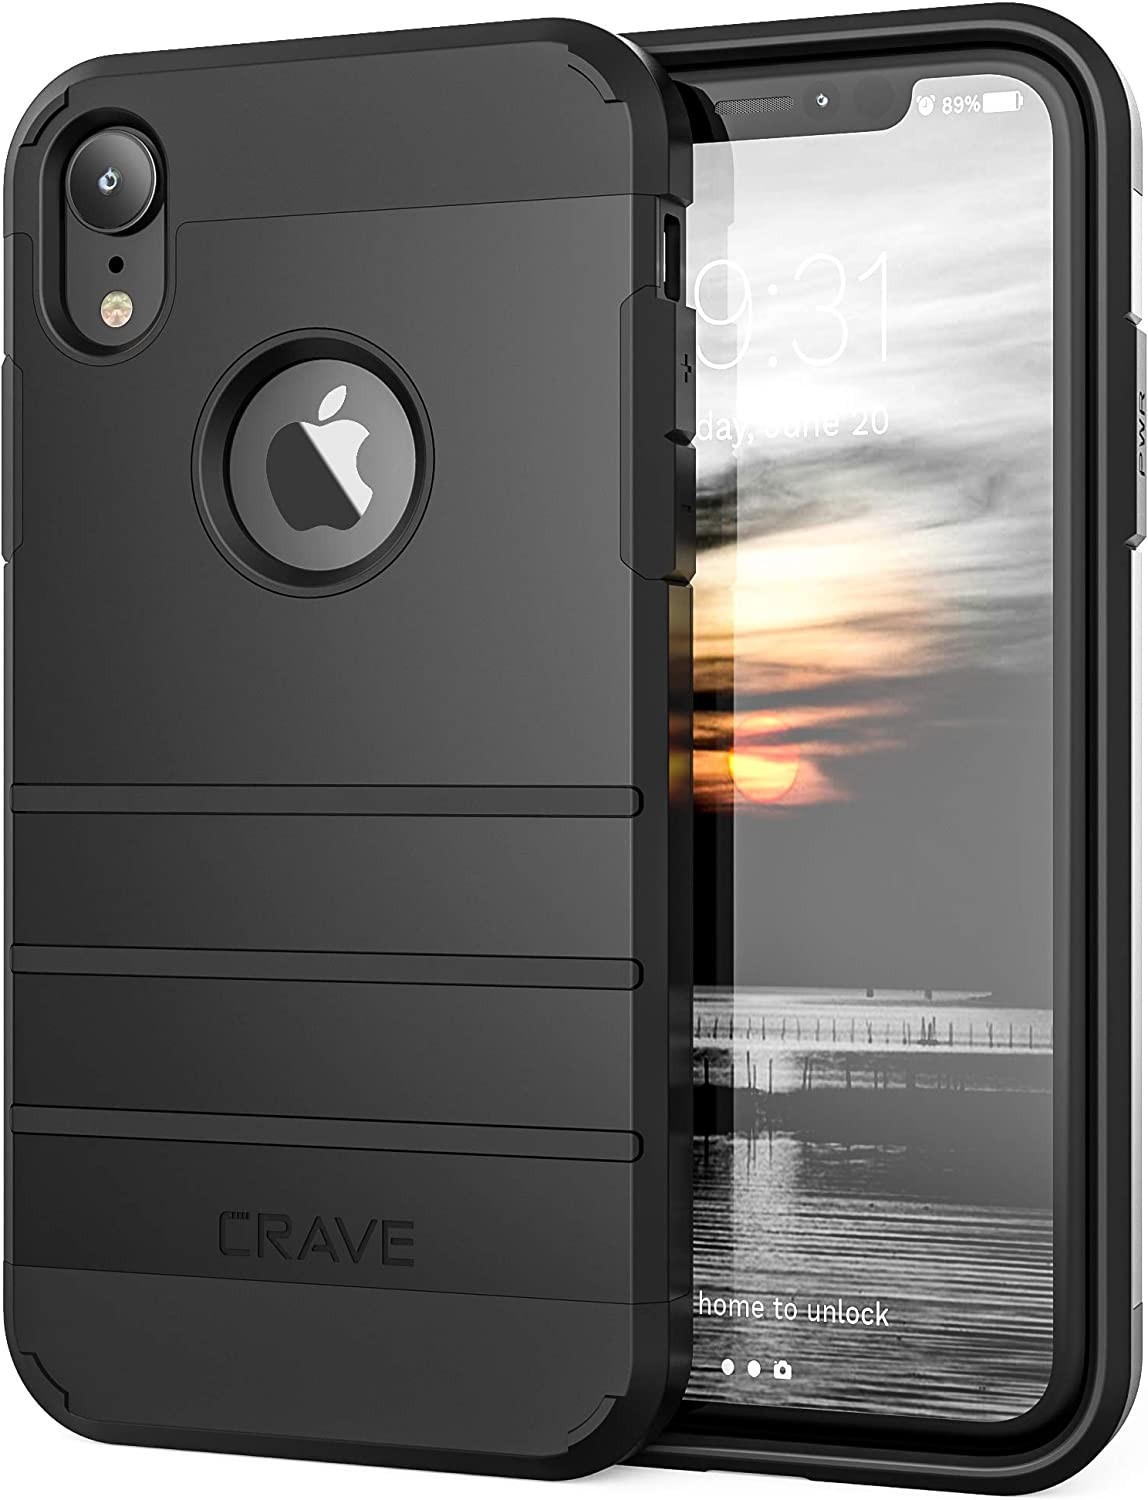 iPhone XR Case, Crave Strong Guard Protection Series Case for Apple iPhone XR (6.1 inch) - Black